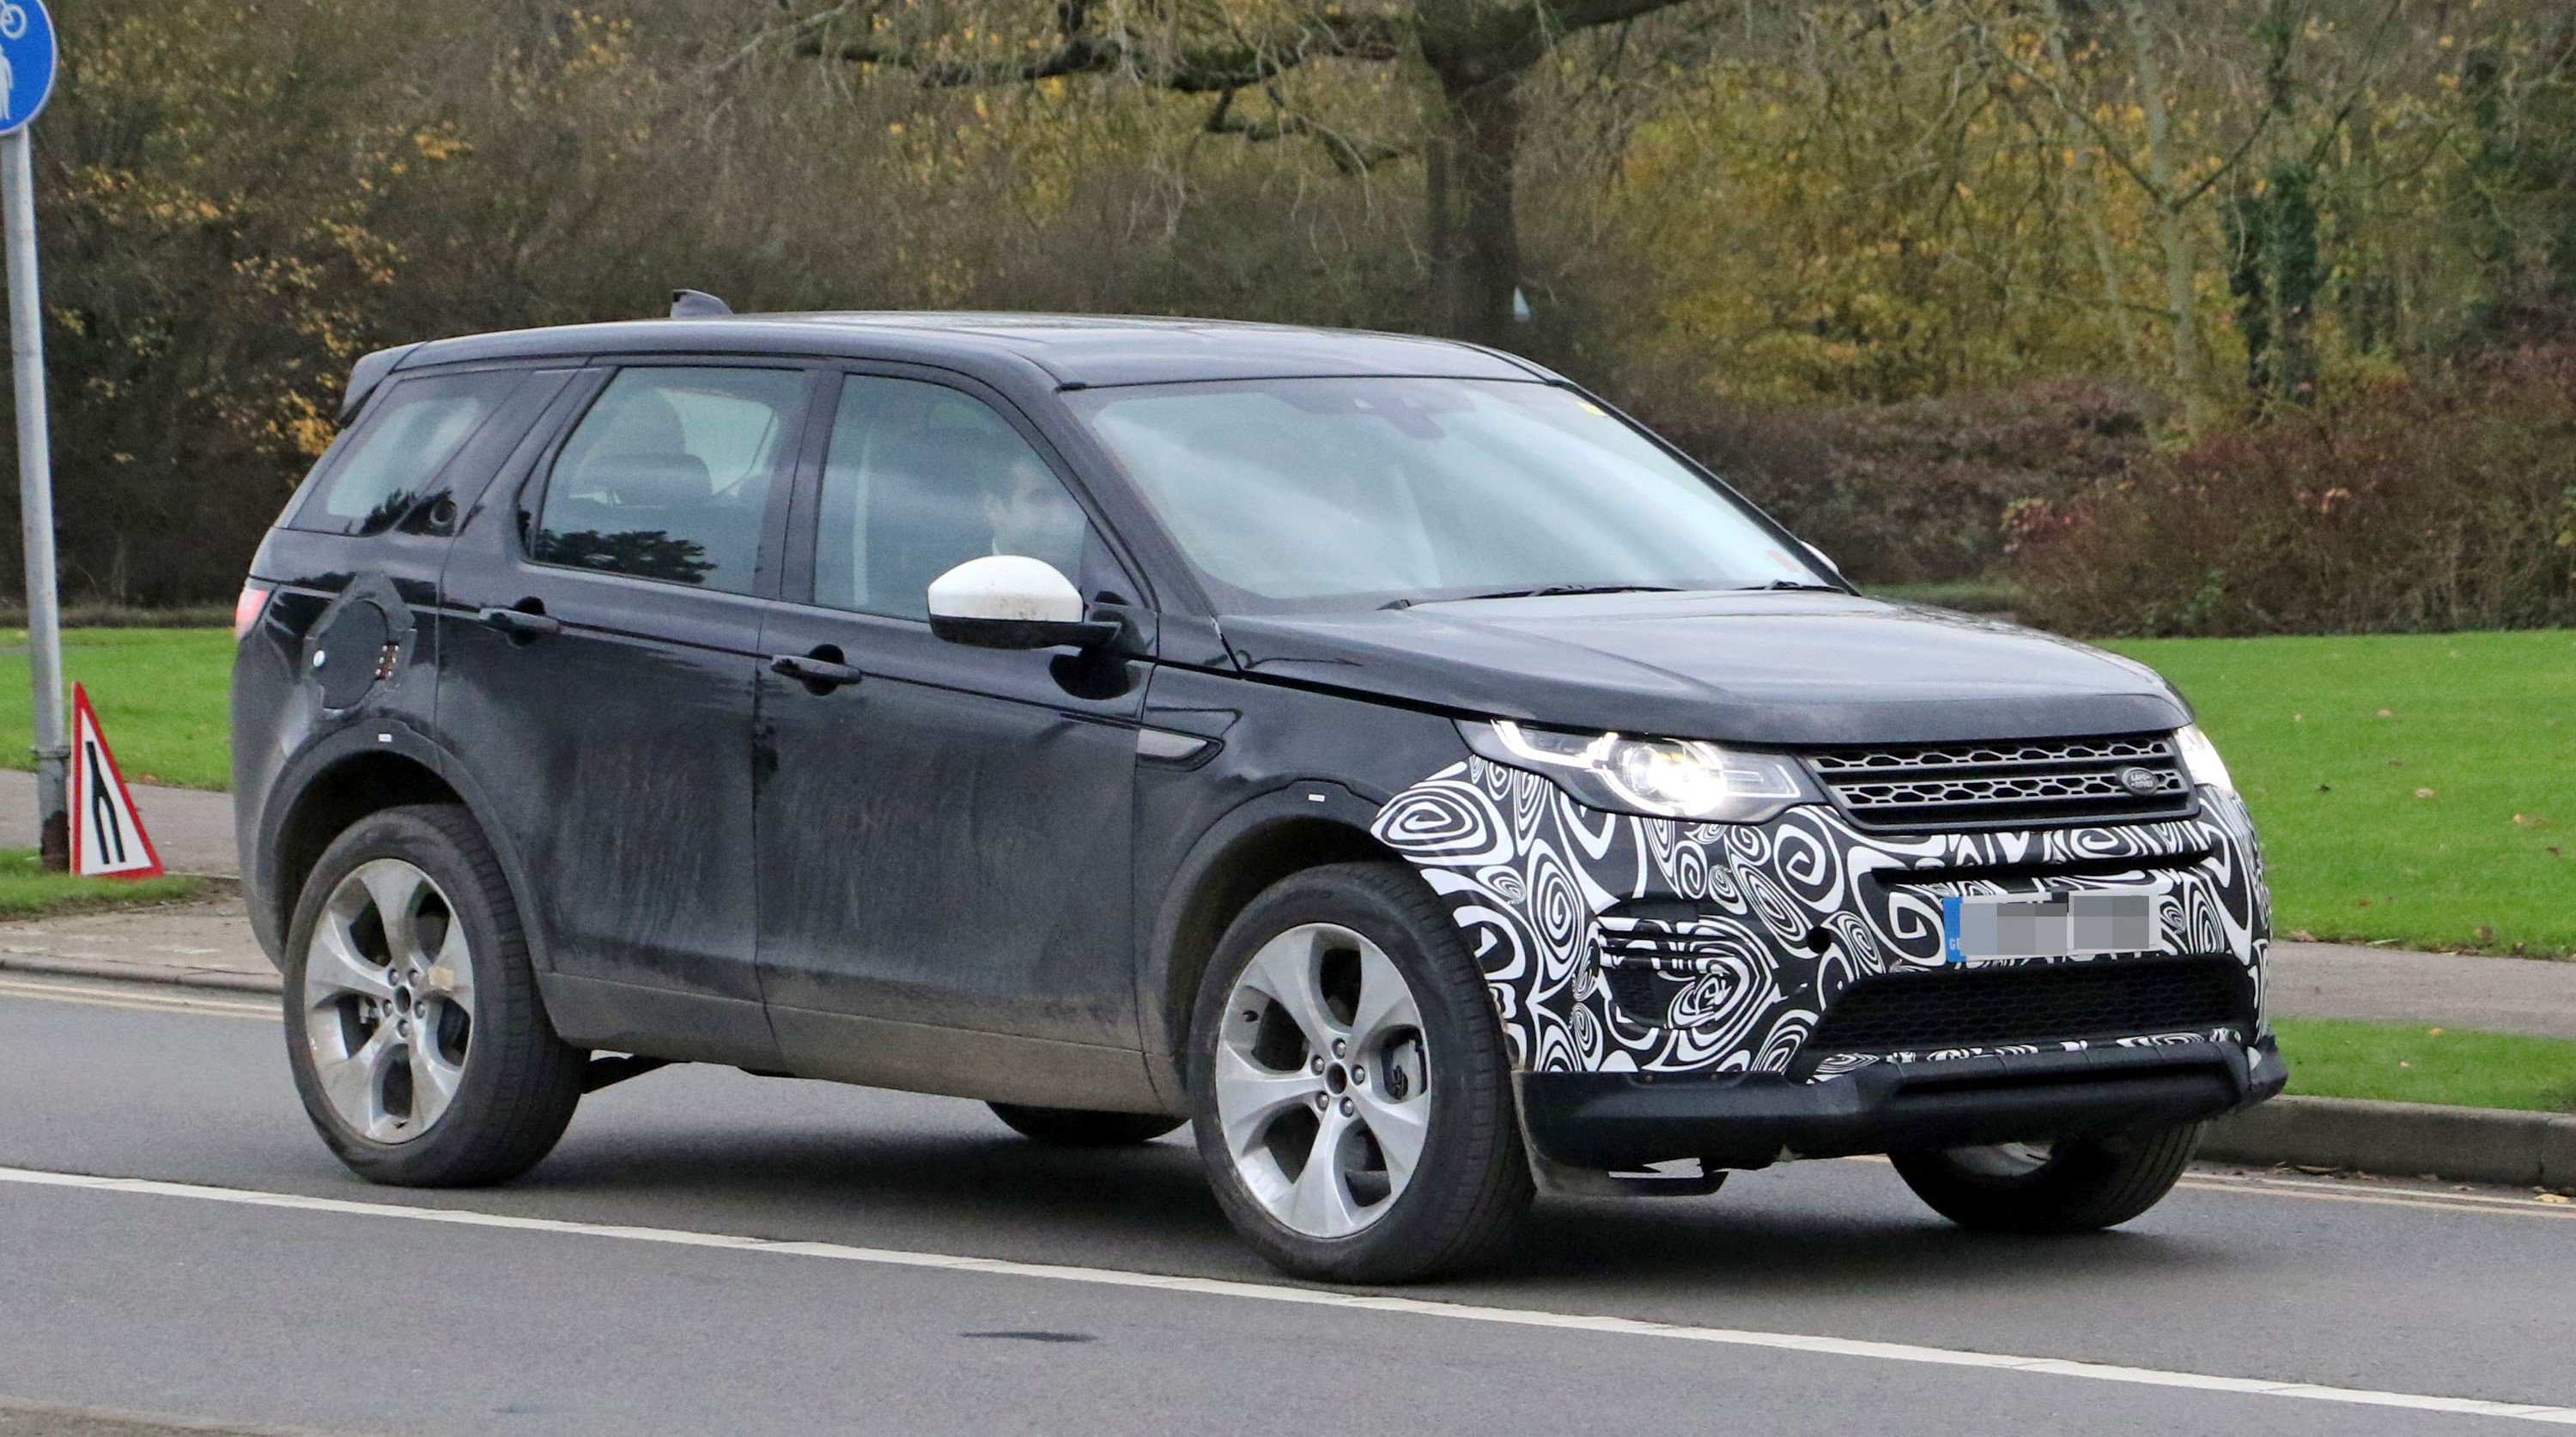 78 A 2020 Land Rover LR4 Price Design And Review